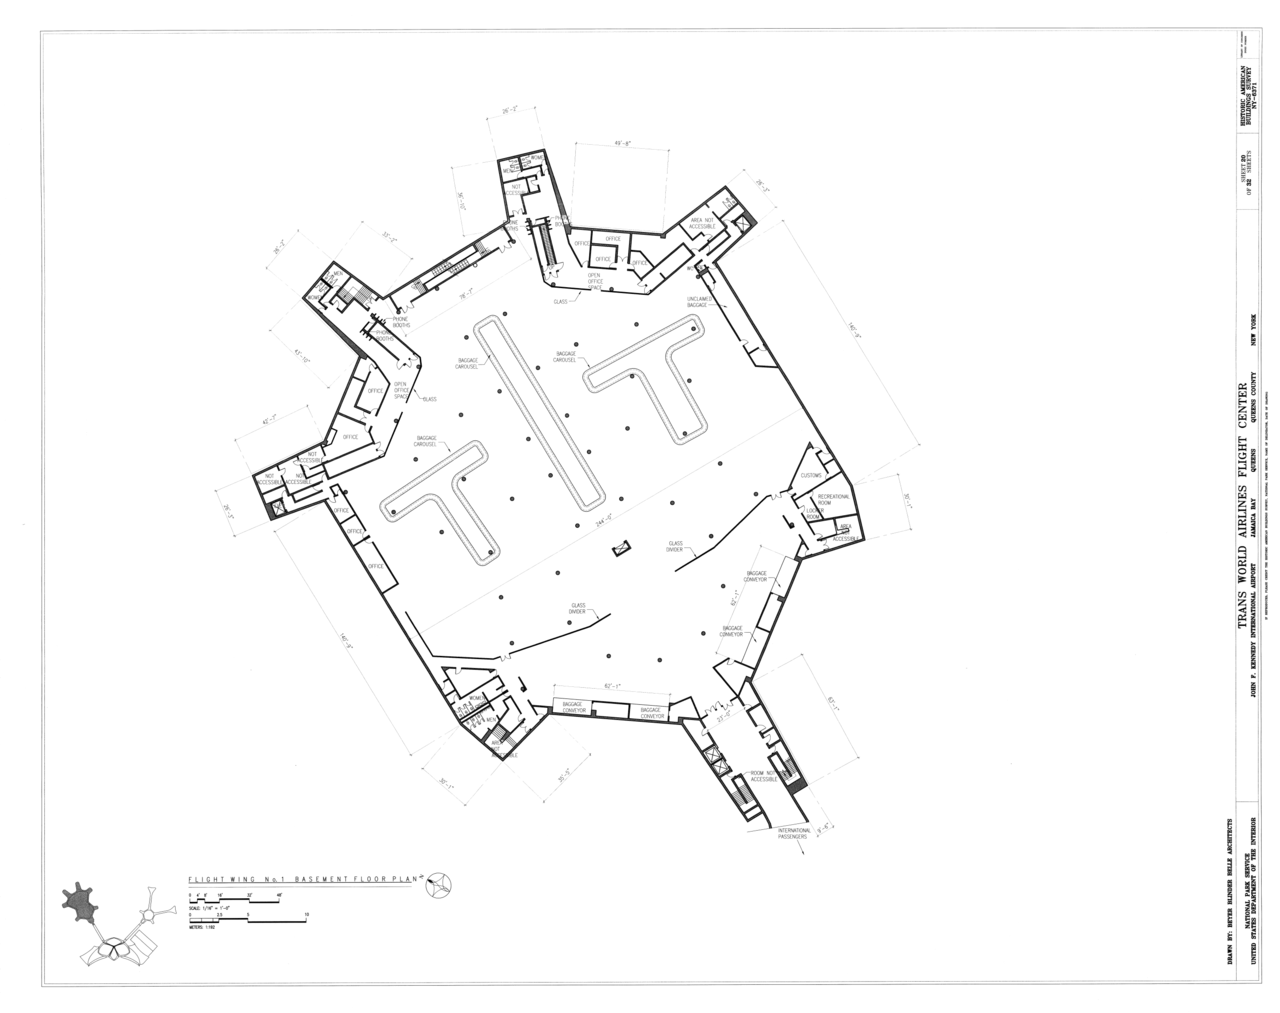 Ping Mall Plan Elevation Section : File flight wing no plan section and elevation